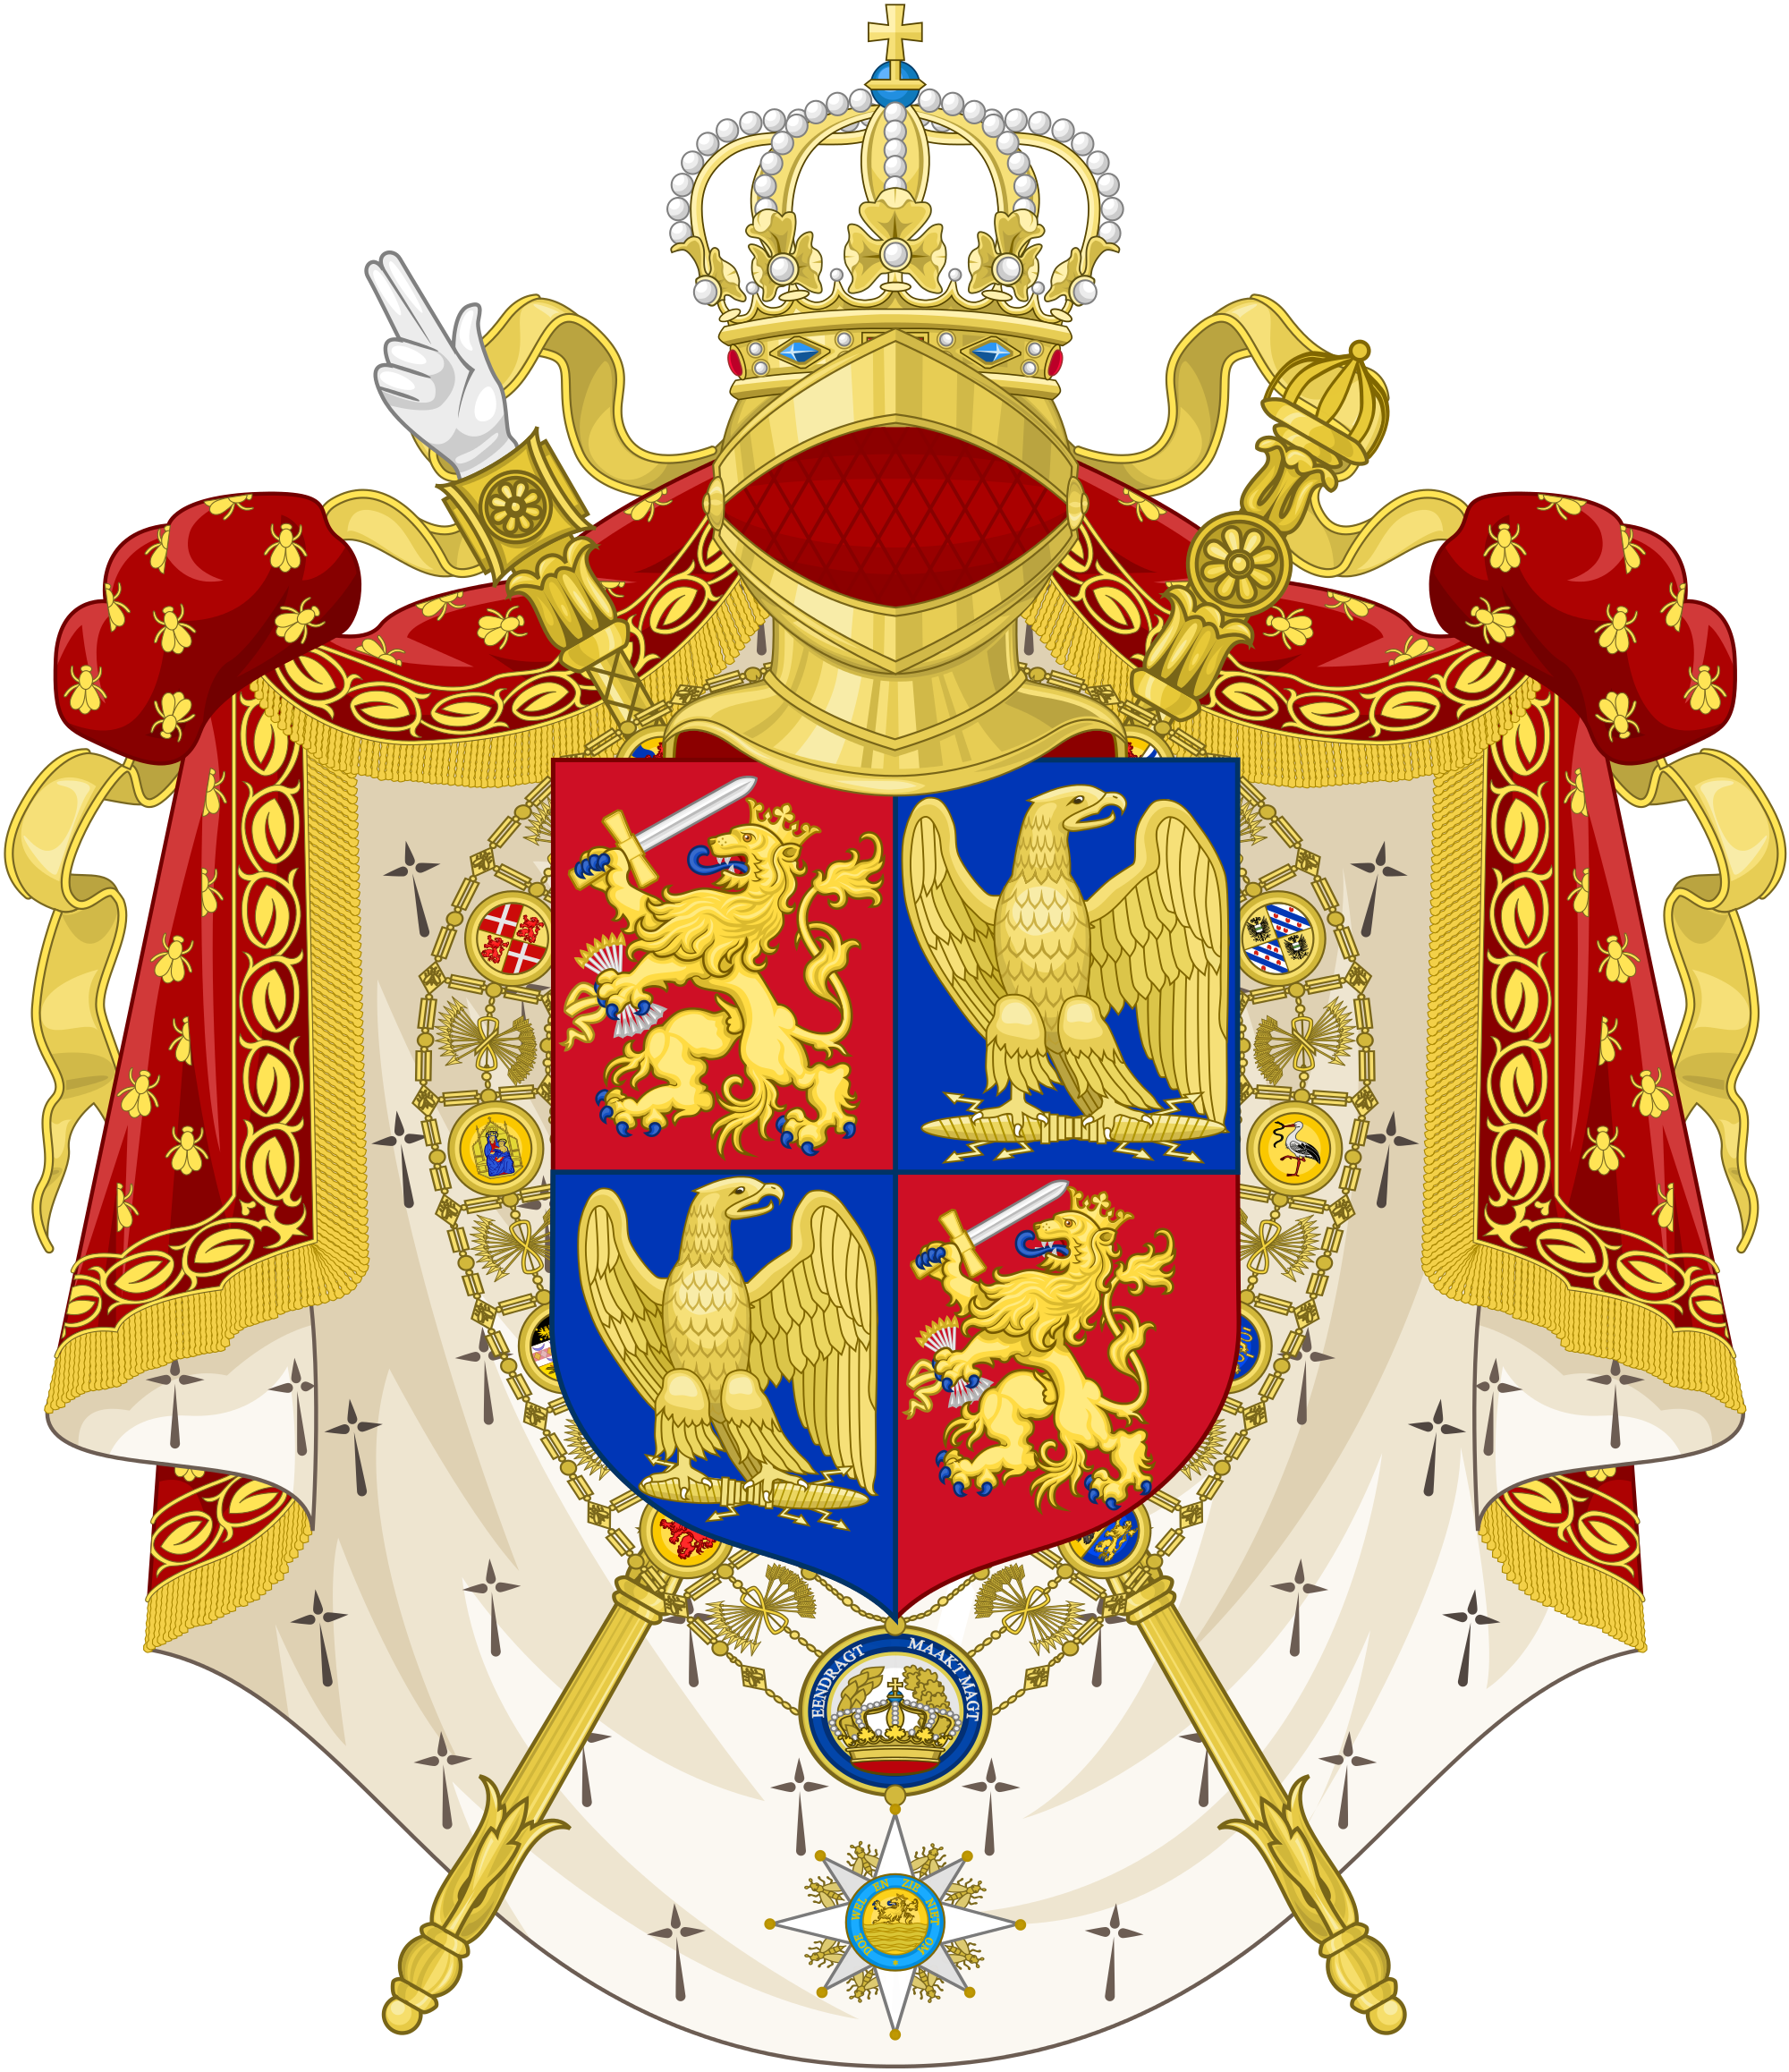 File:Coat of Arms of Louis II as King of Holland.svg.